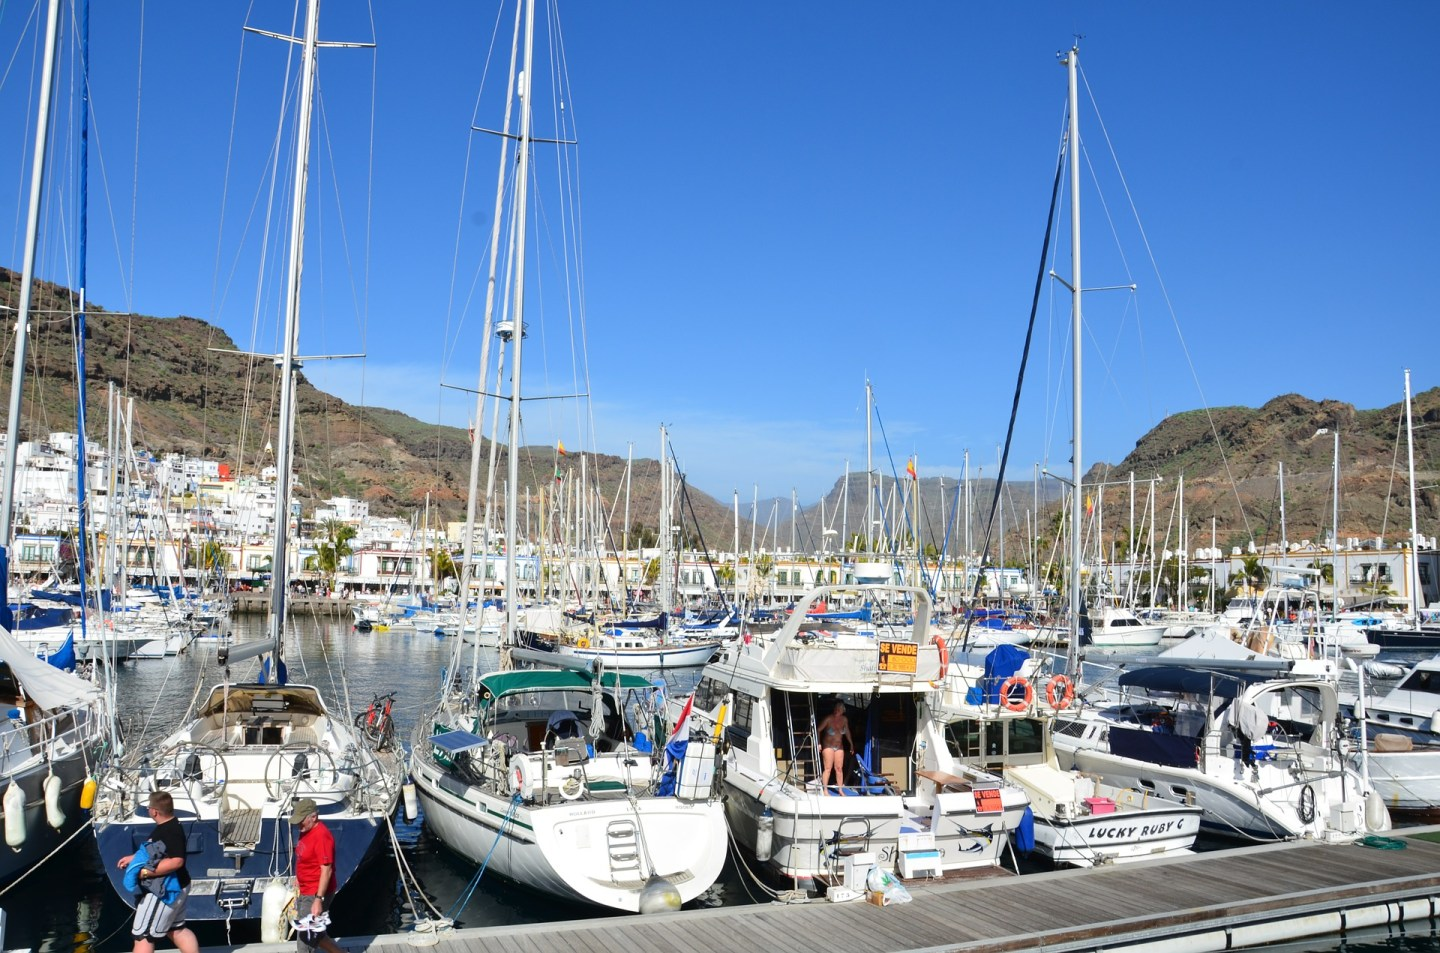 Charing port town in Gran Canaria